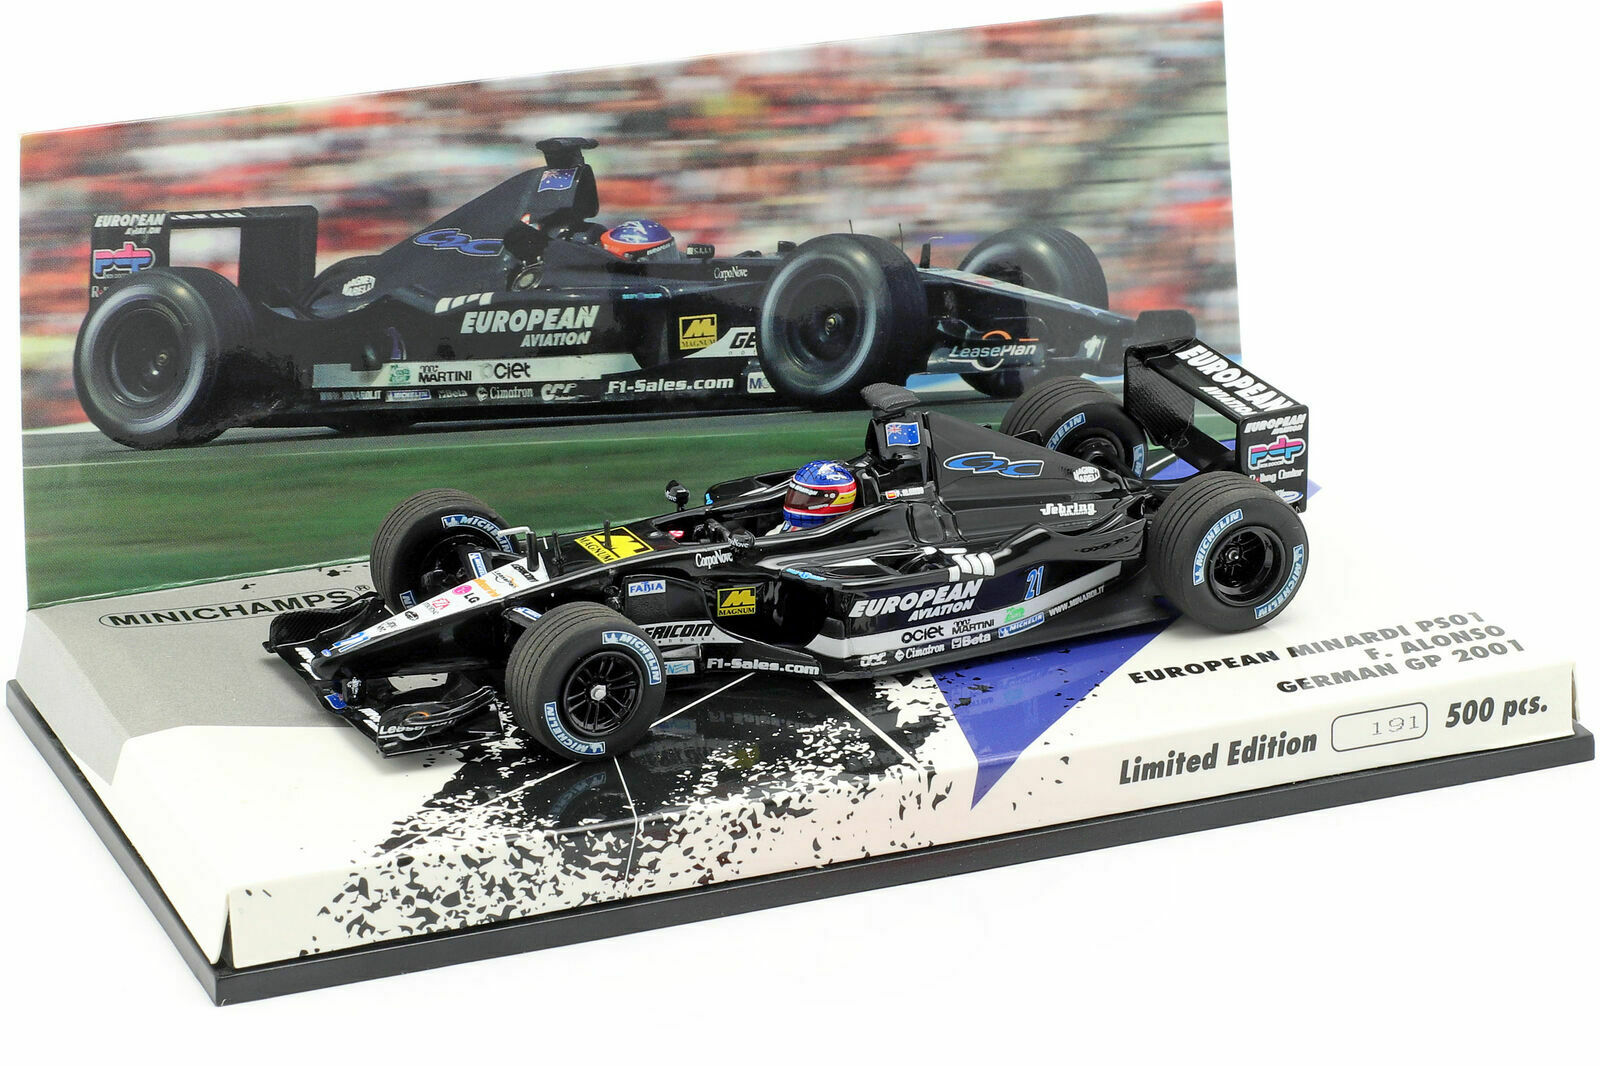 1 43 Minichamps Fernando Alonso Minardi PS01 2001 German Grand Prix F1